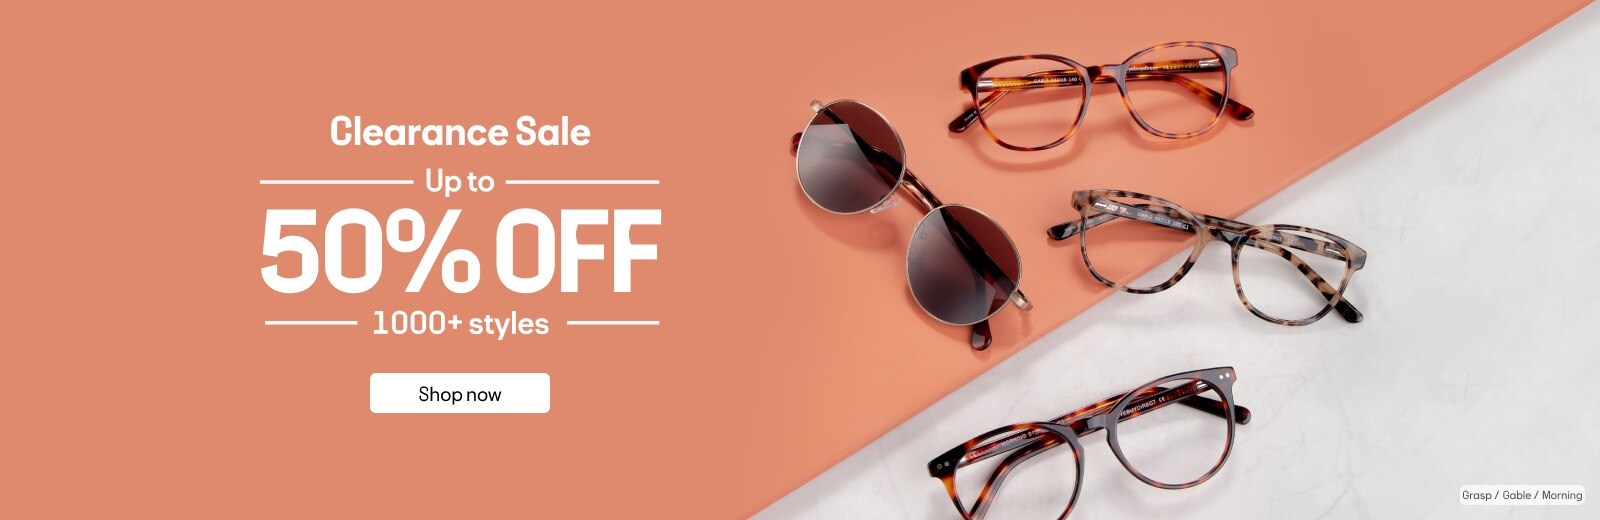 Clearance Sale Up to 50% OFF 1000+ Styles